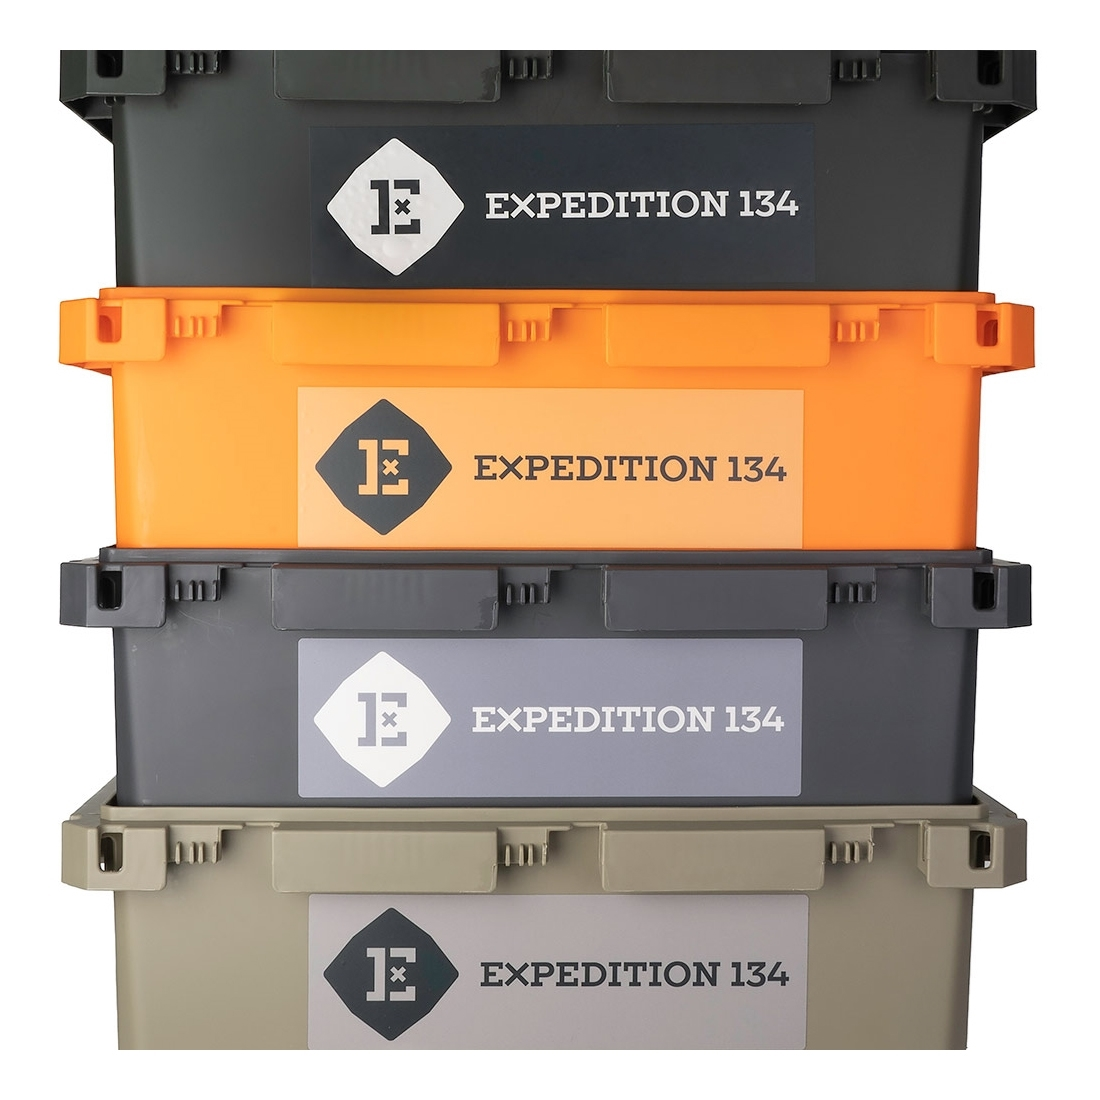 Expedition134 Heavy Duty Plastic Storage Box 55L - Nesting design for compact storage